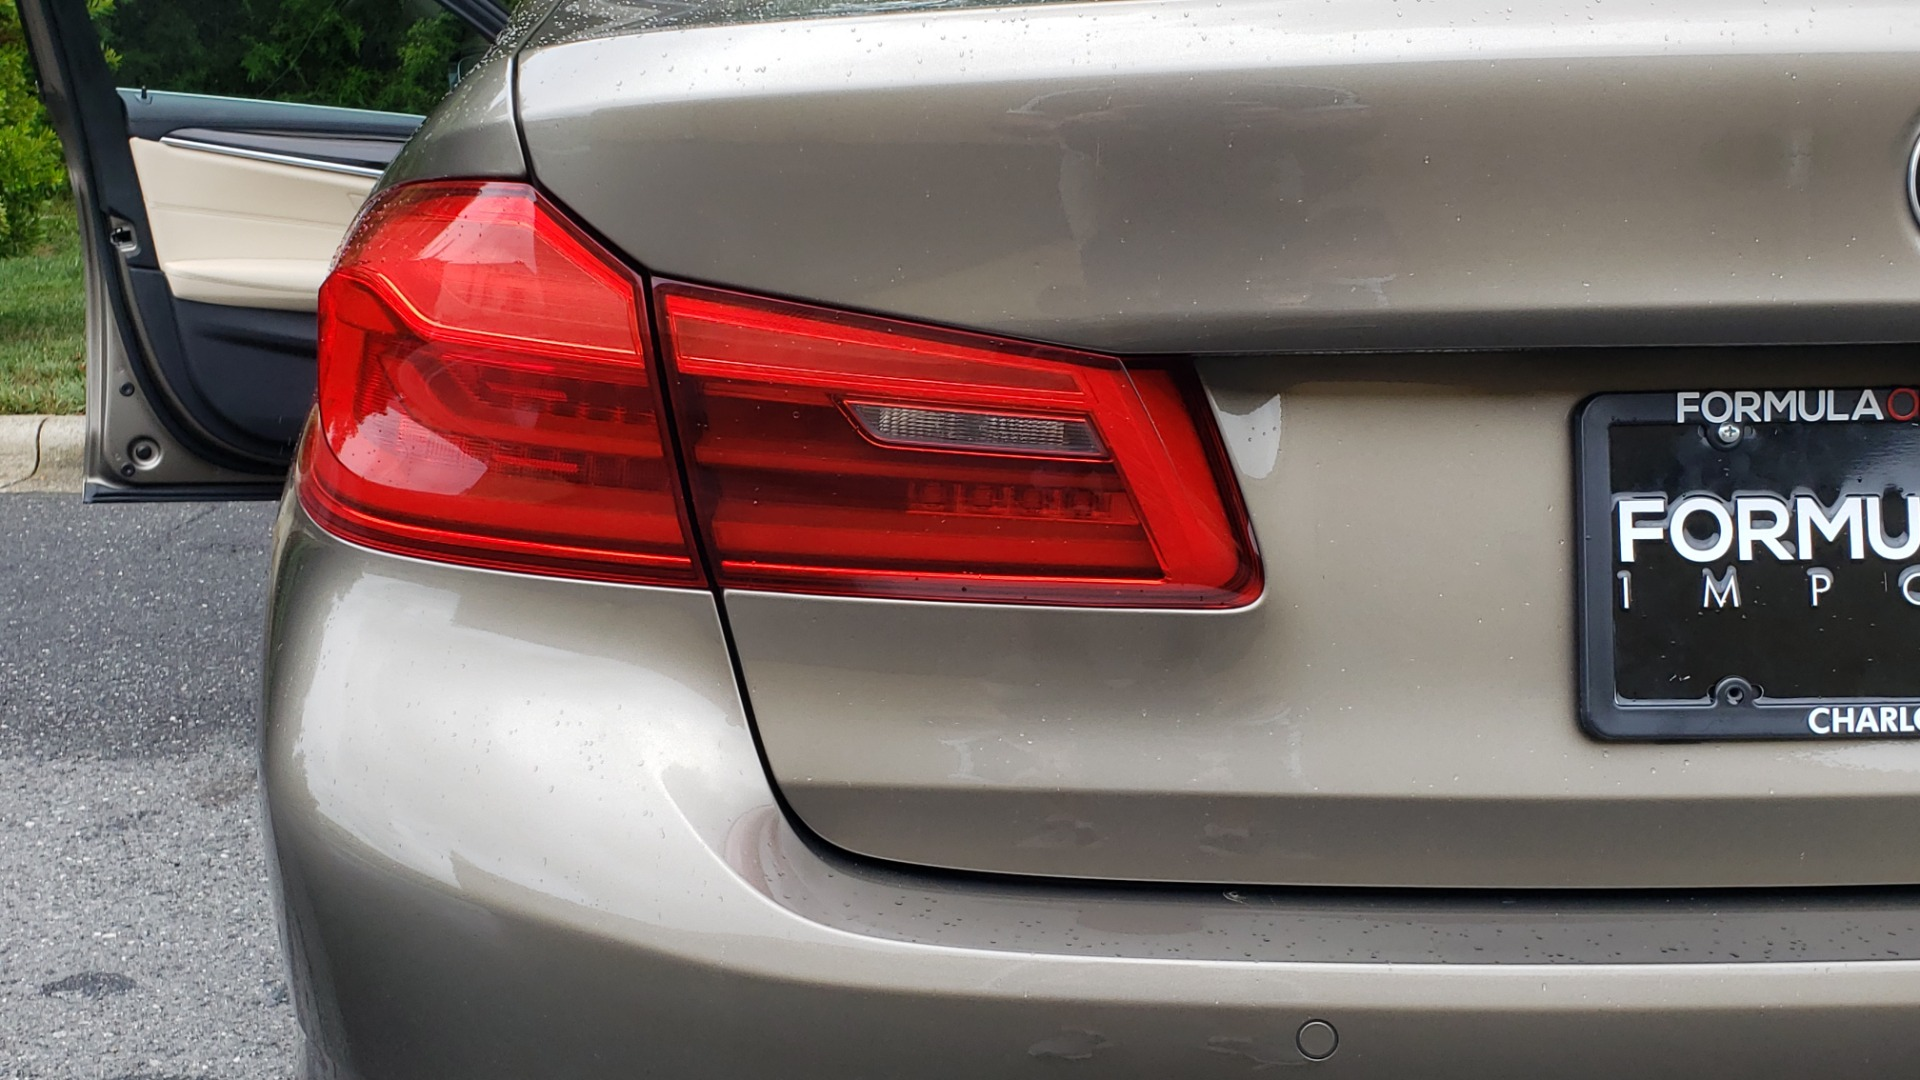 Used 2017 BMW 5 SERIES 530I PREMIUM / NAV / SUNROOF / DRVR ASST PLUS II / LUXURY for sale Sold at Formula Imports in Charlotte NC 28227 29